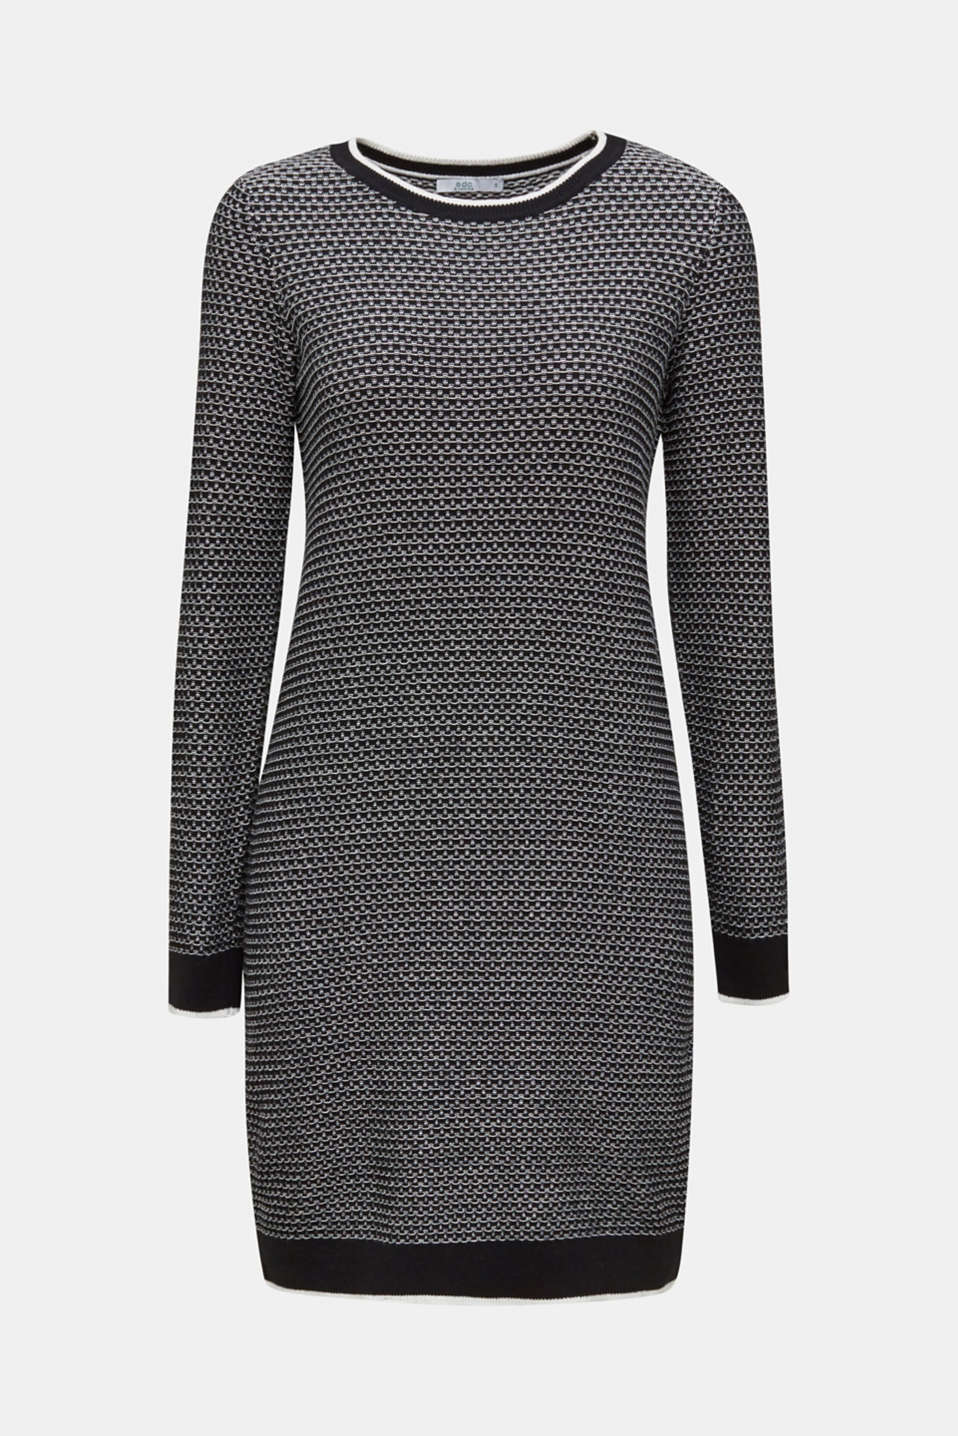 Knit dress with texture, 100% cotton, BLACK 2, detail image number 7